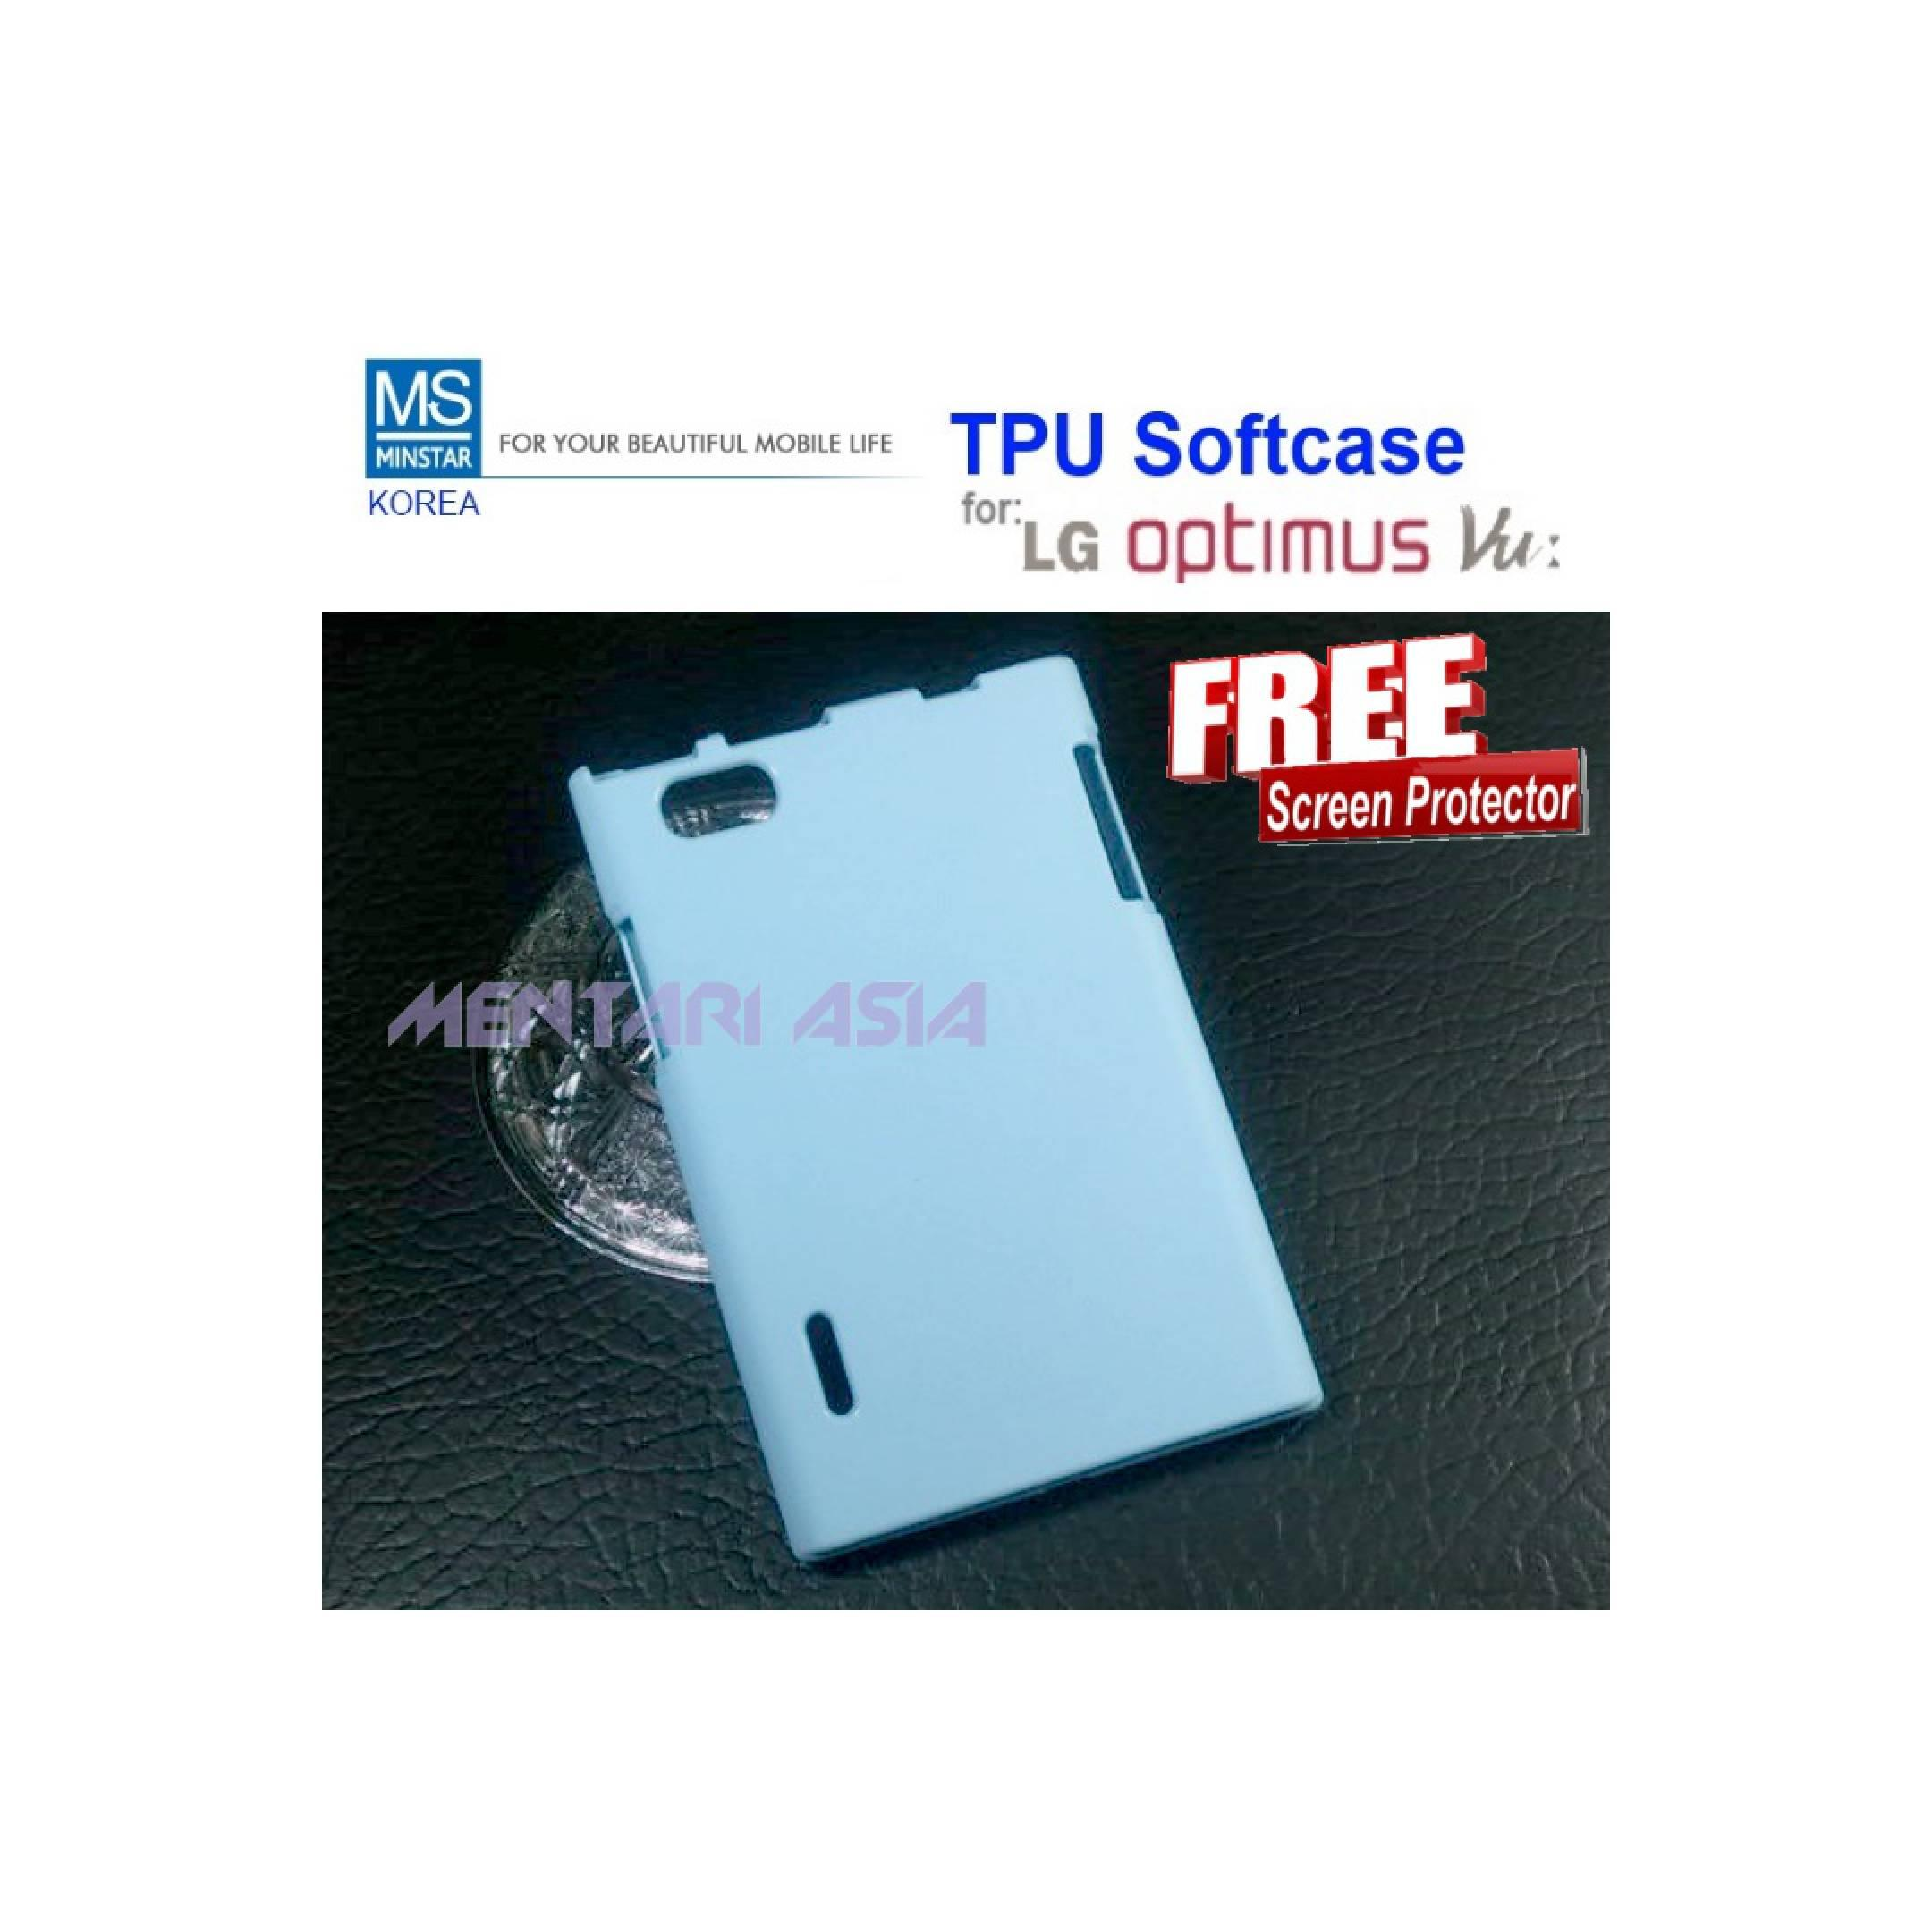 LG Optimus Vu P895 : MINSTAR Korea TPU Softcase FREE SP (BLUE)